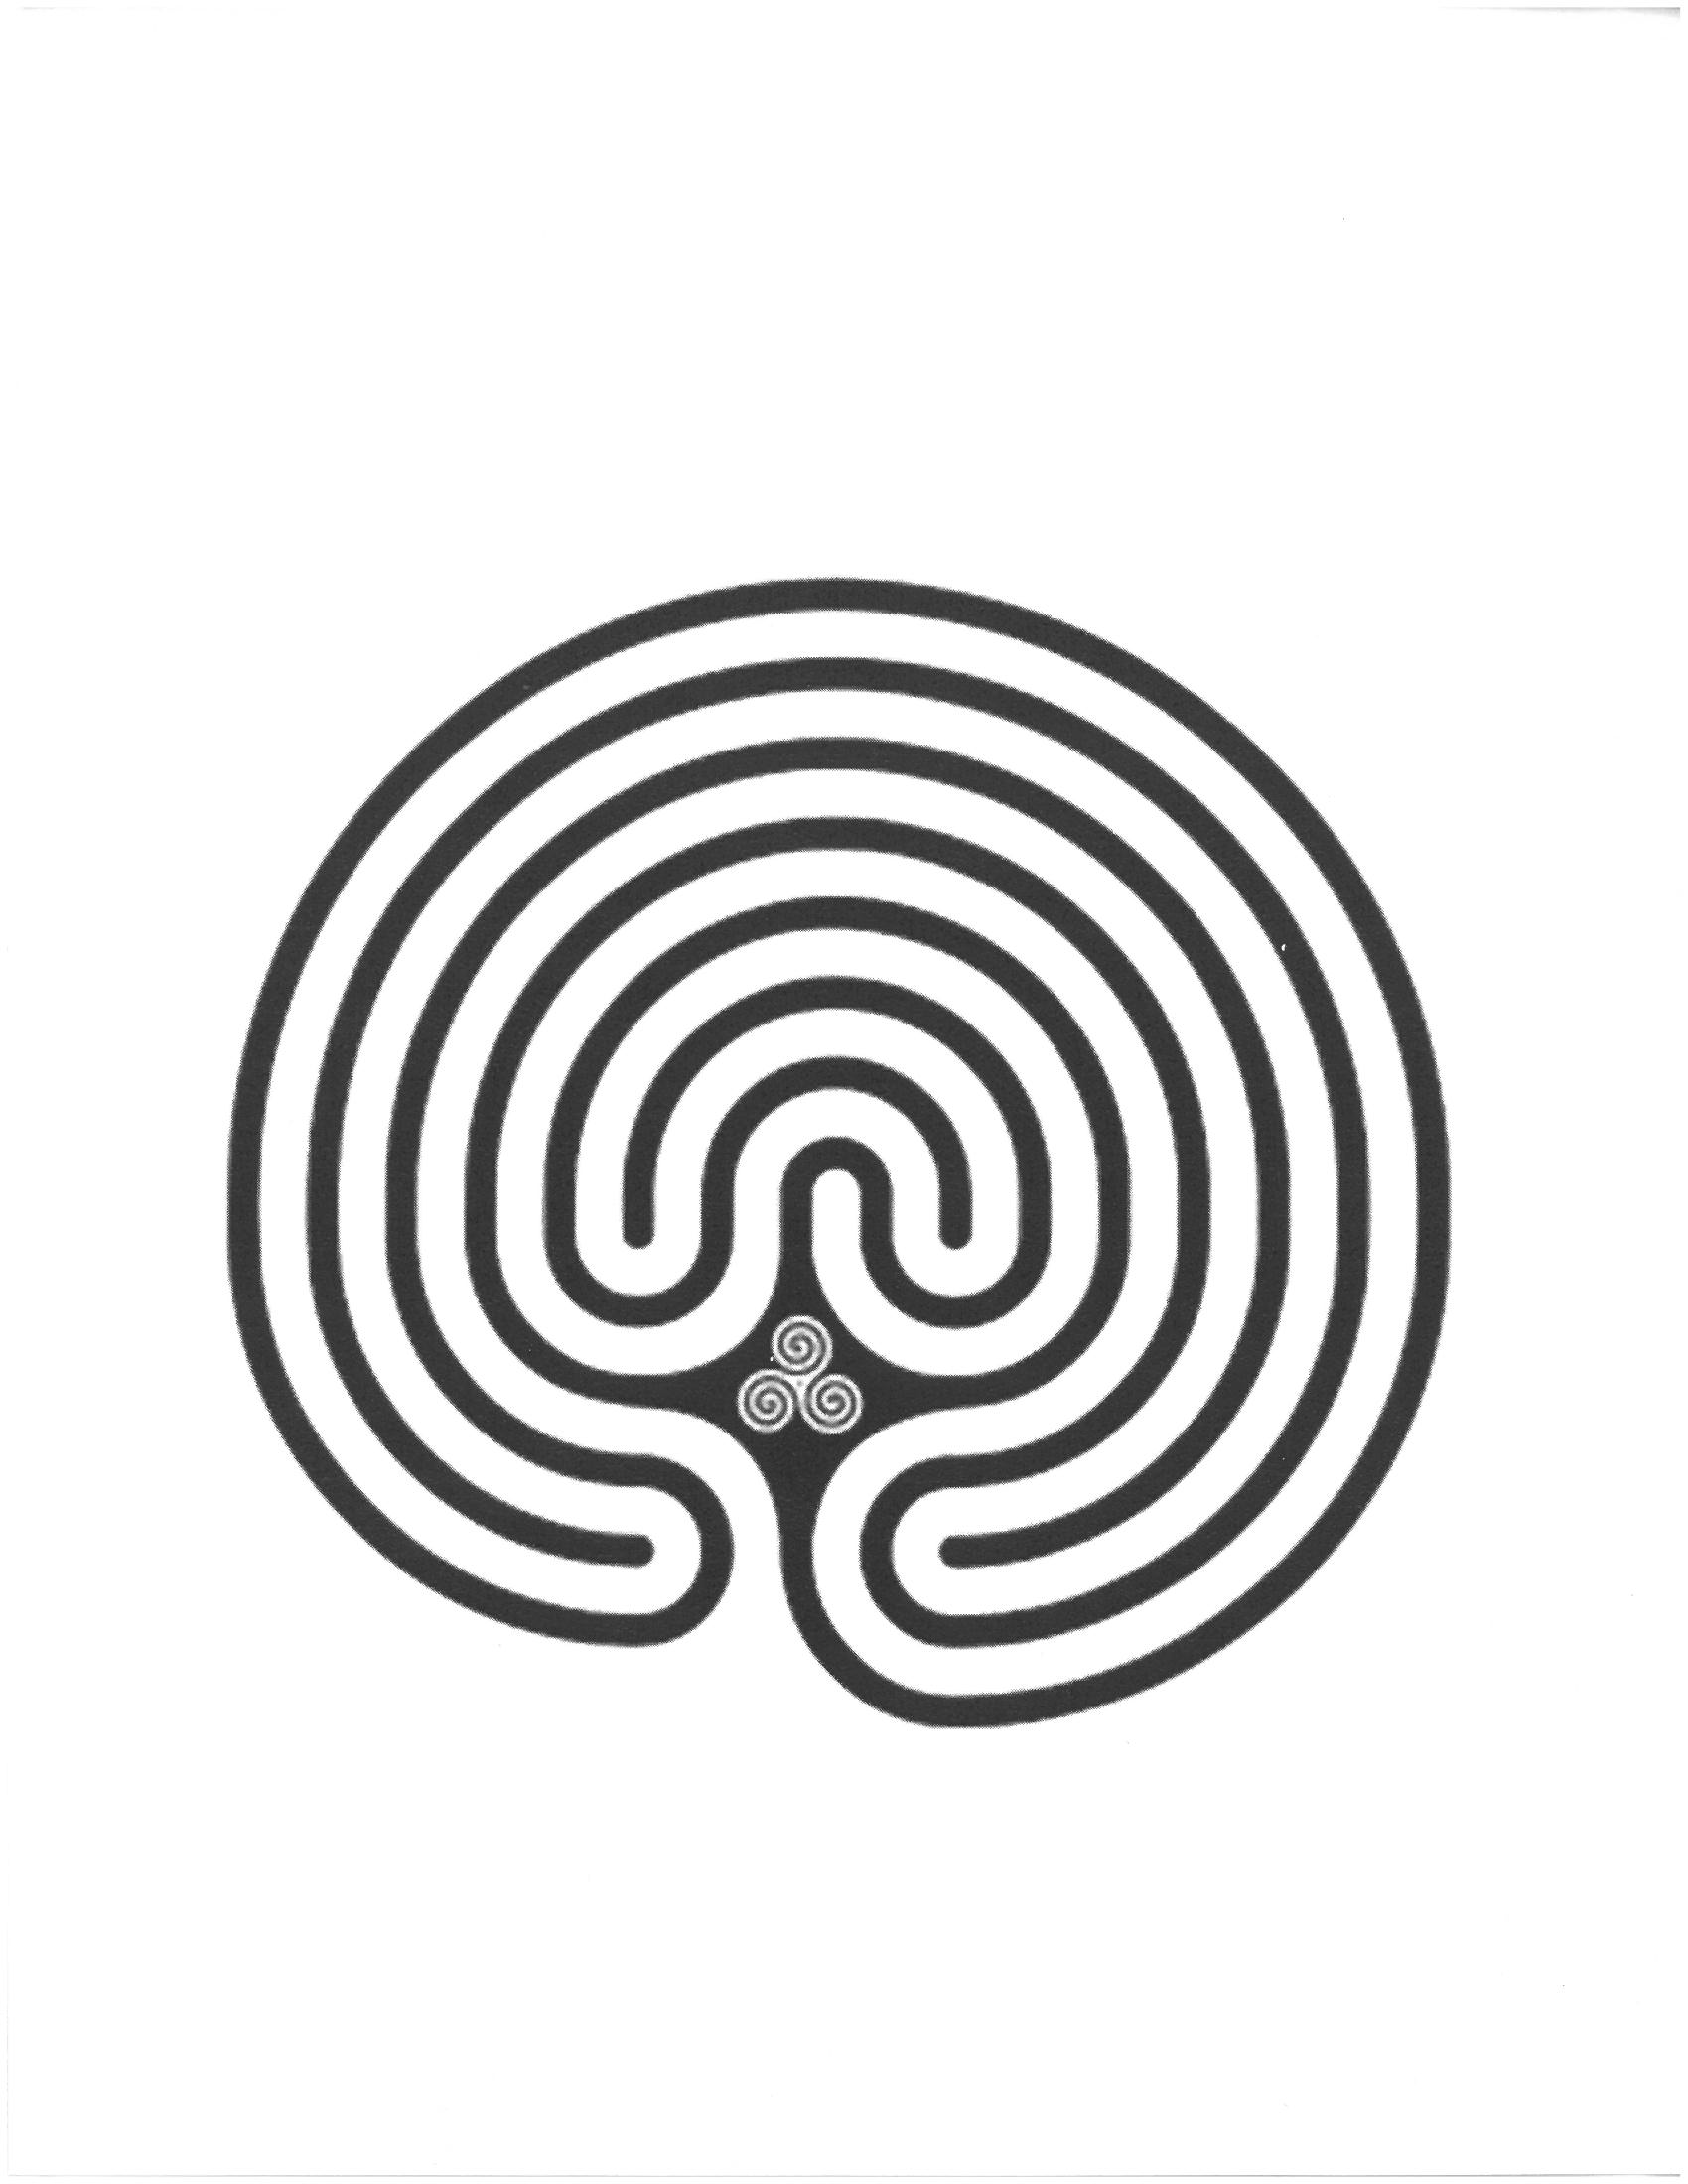 photograph about Finger Labyrinth Printable named A Finger Labyrinth Challenge For All Ages